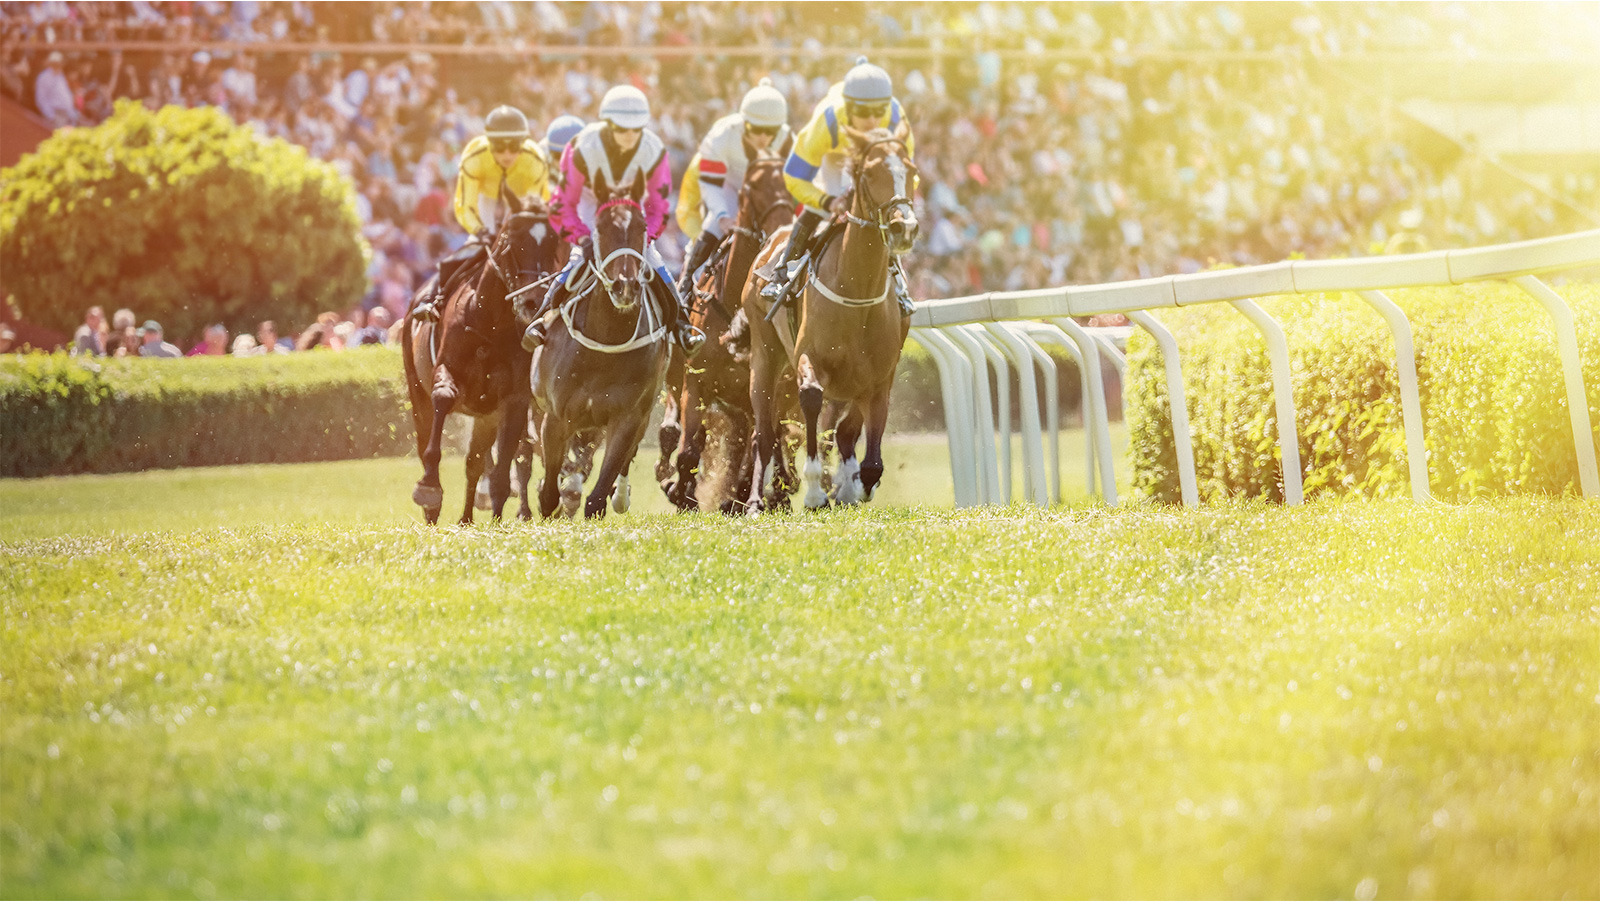 The Mouthpiece: A sea change for seabiscuit?